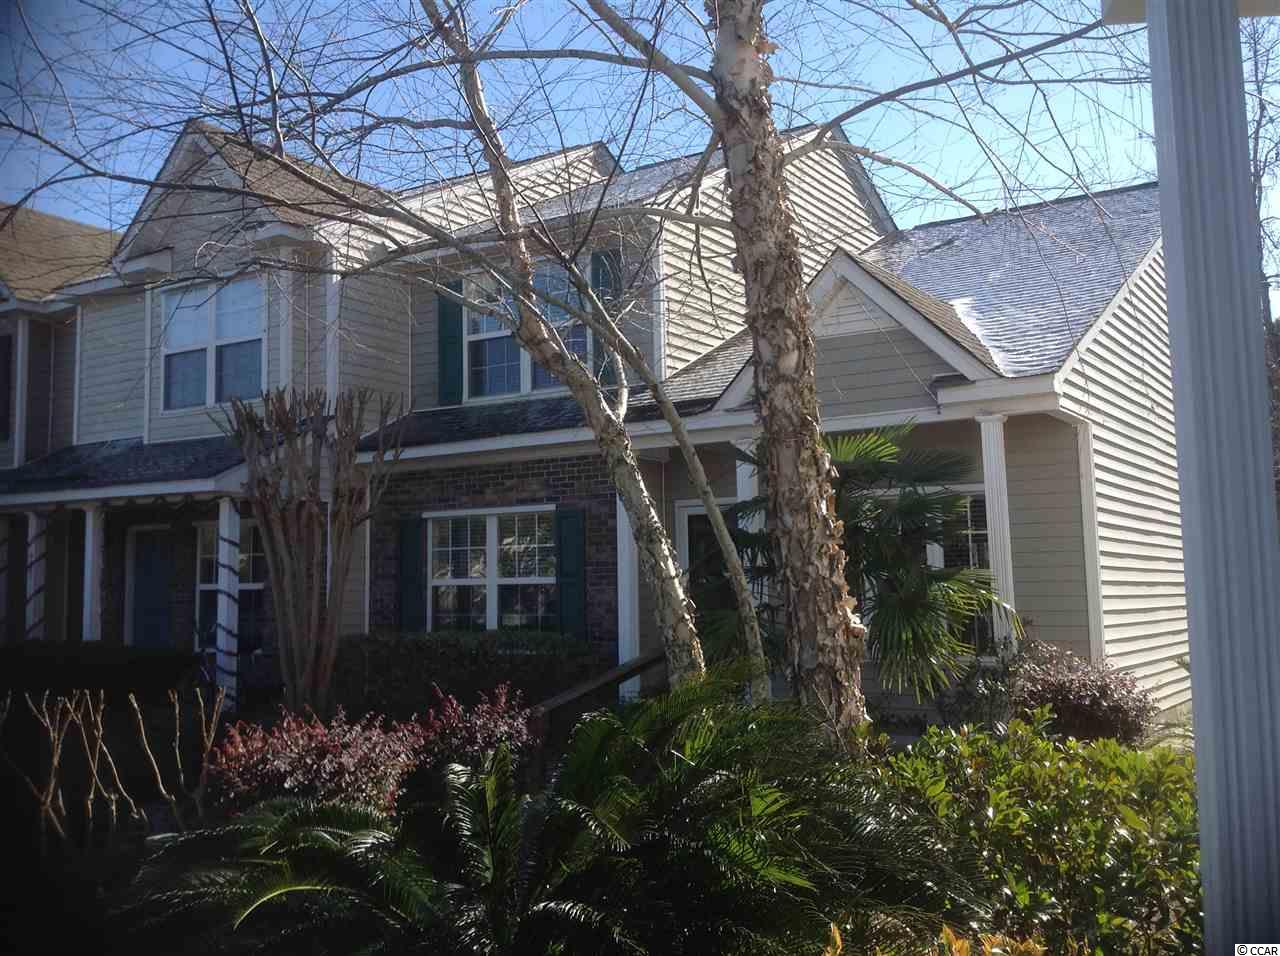 Townhouse MLS:1800351 PARKVIEW SUBDIVISION - 17TH AVE.  959 Pendant Circle Myrtle Beach SC